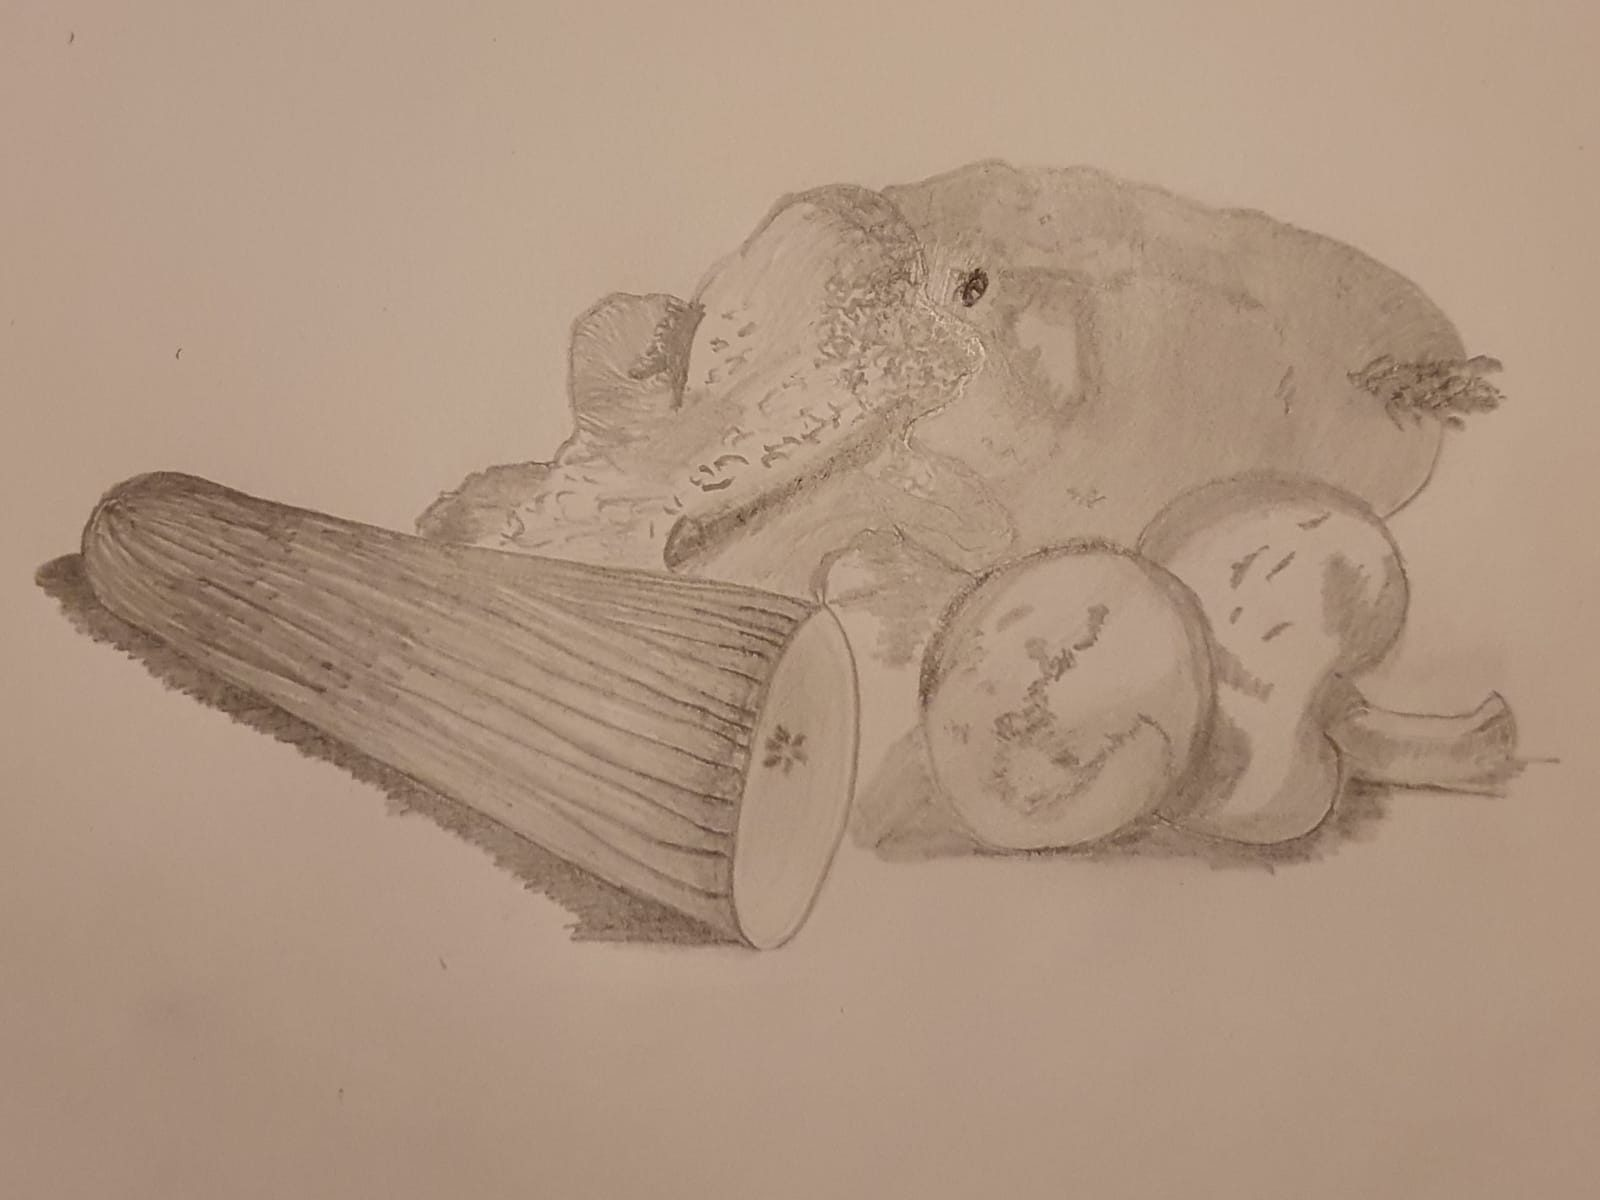 Pencil drawing of a still life produced by a student at online art course with live tuition